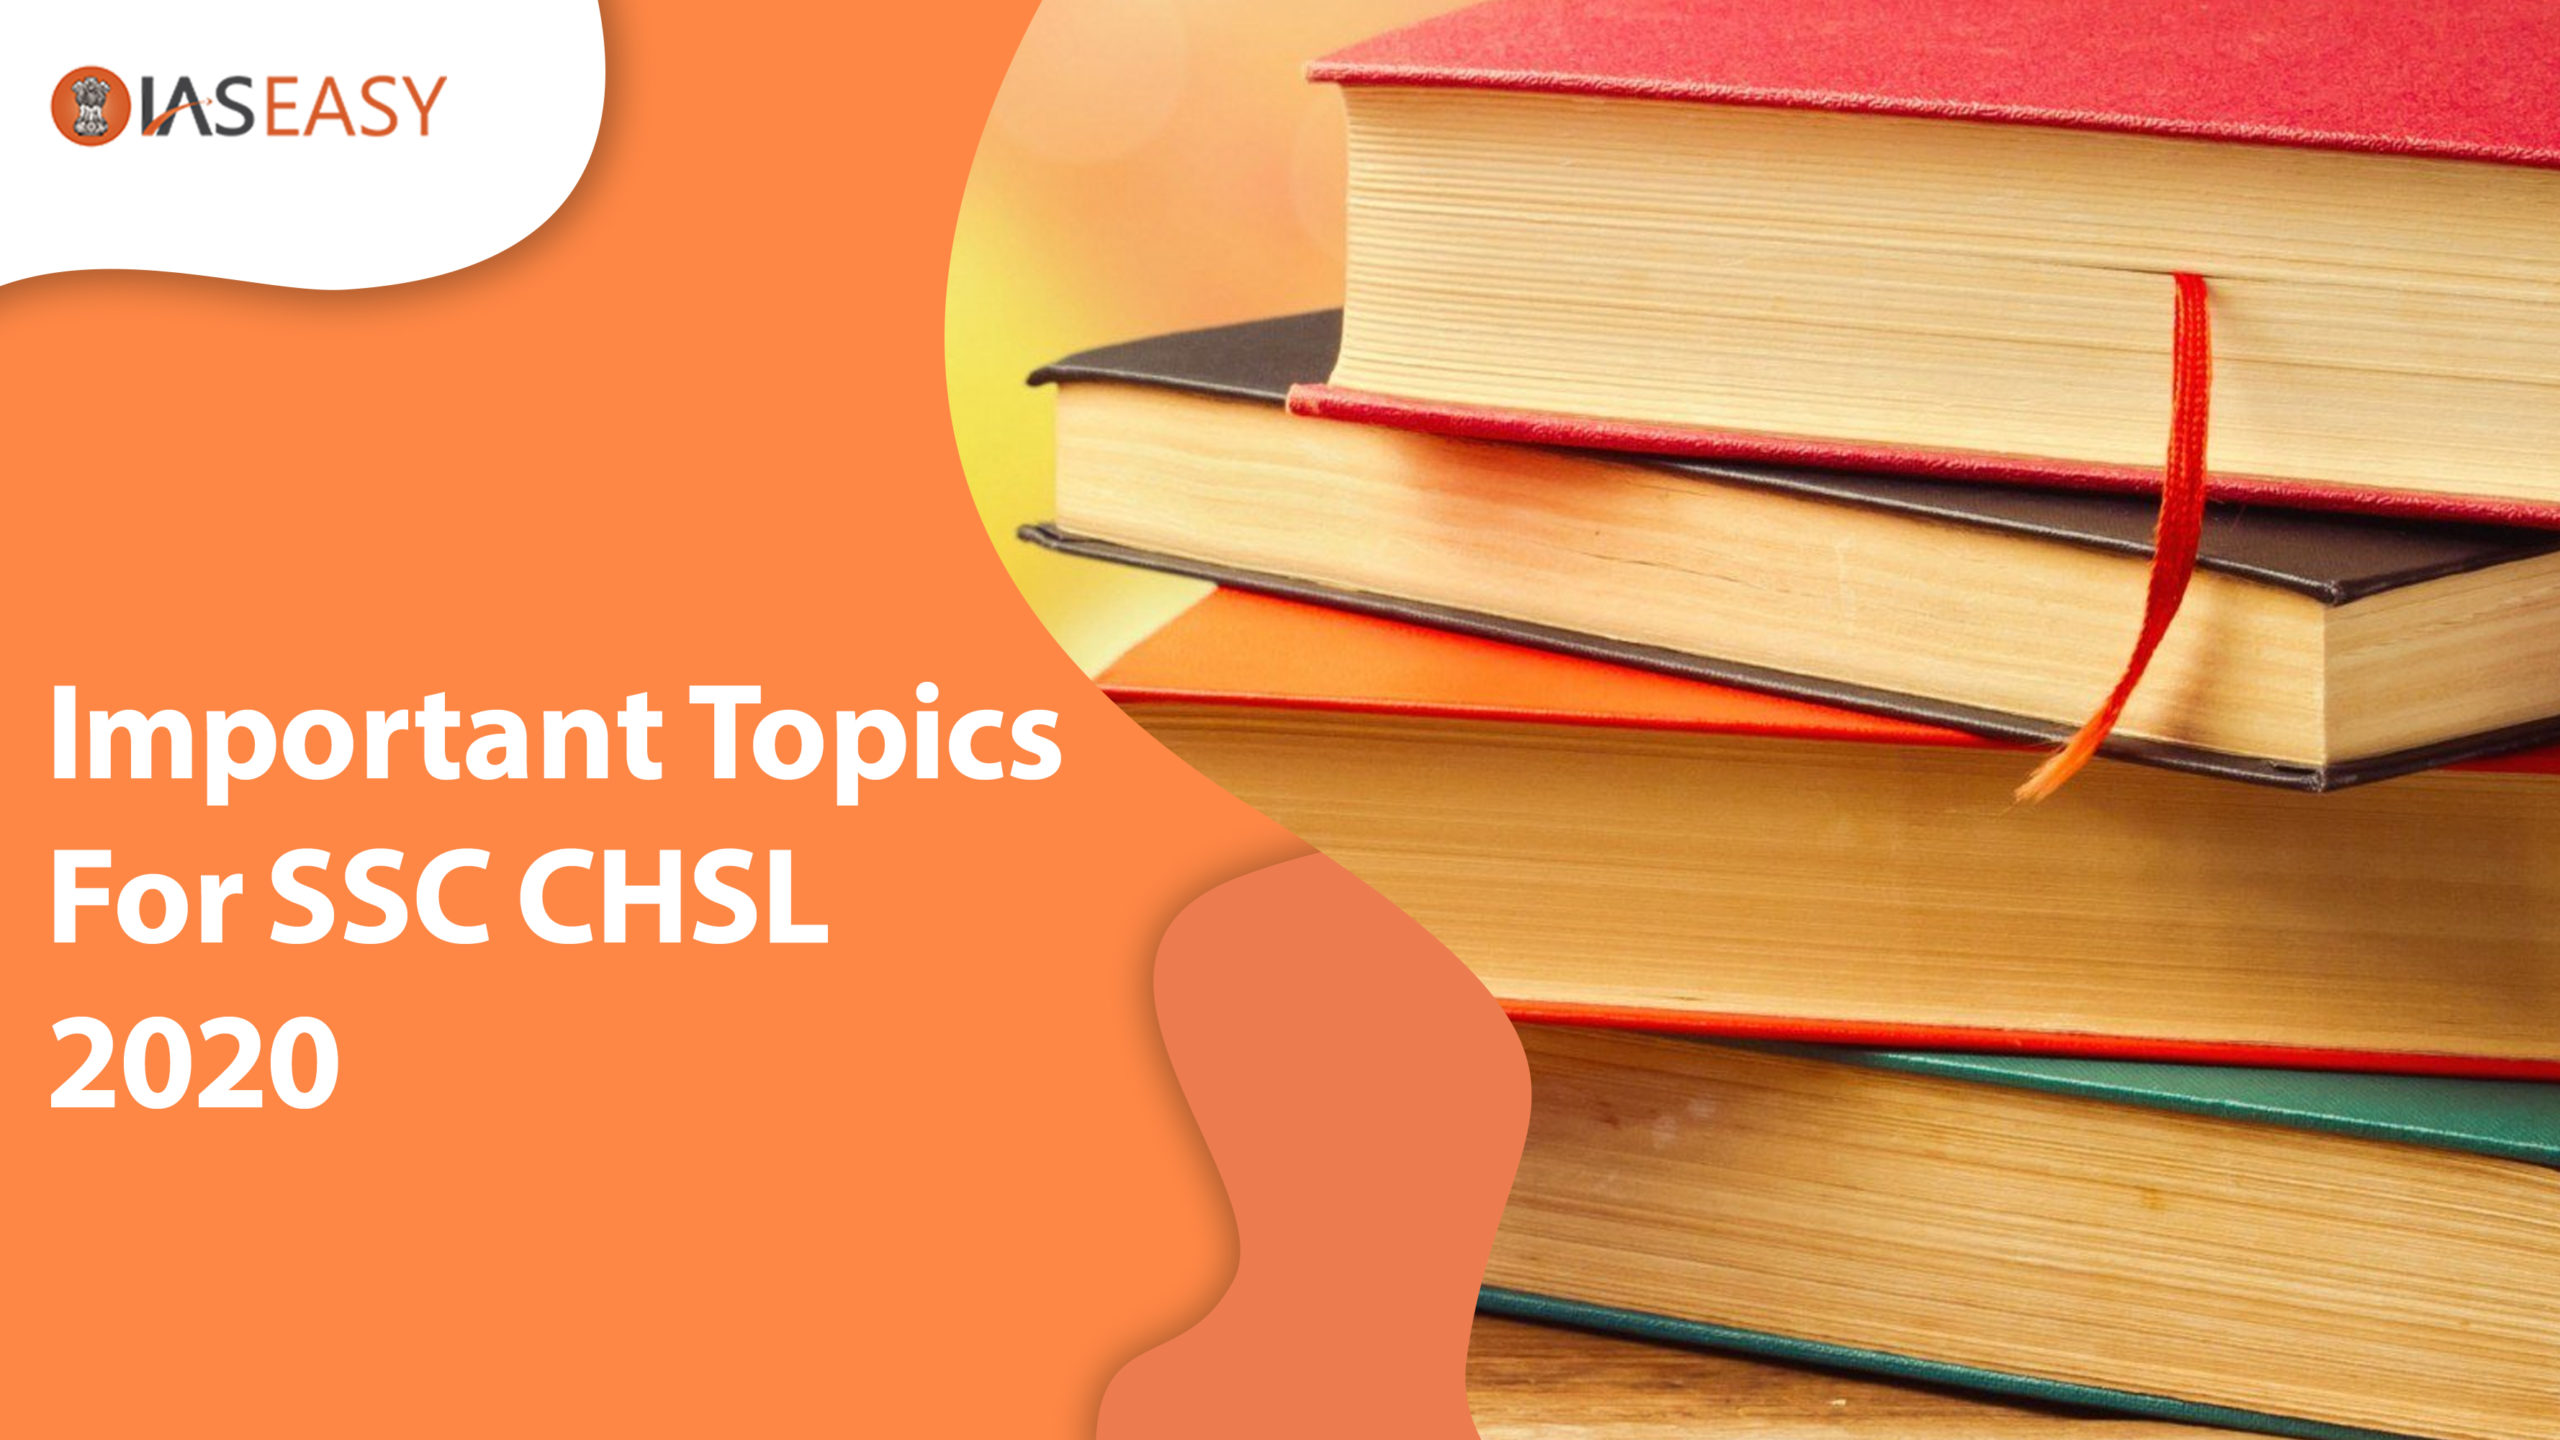 Important Topics for SSC CHSL 2020